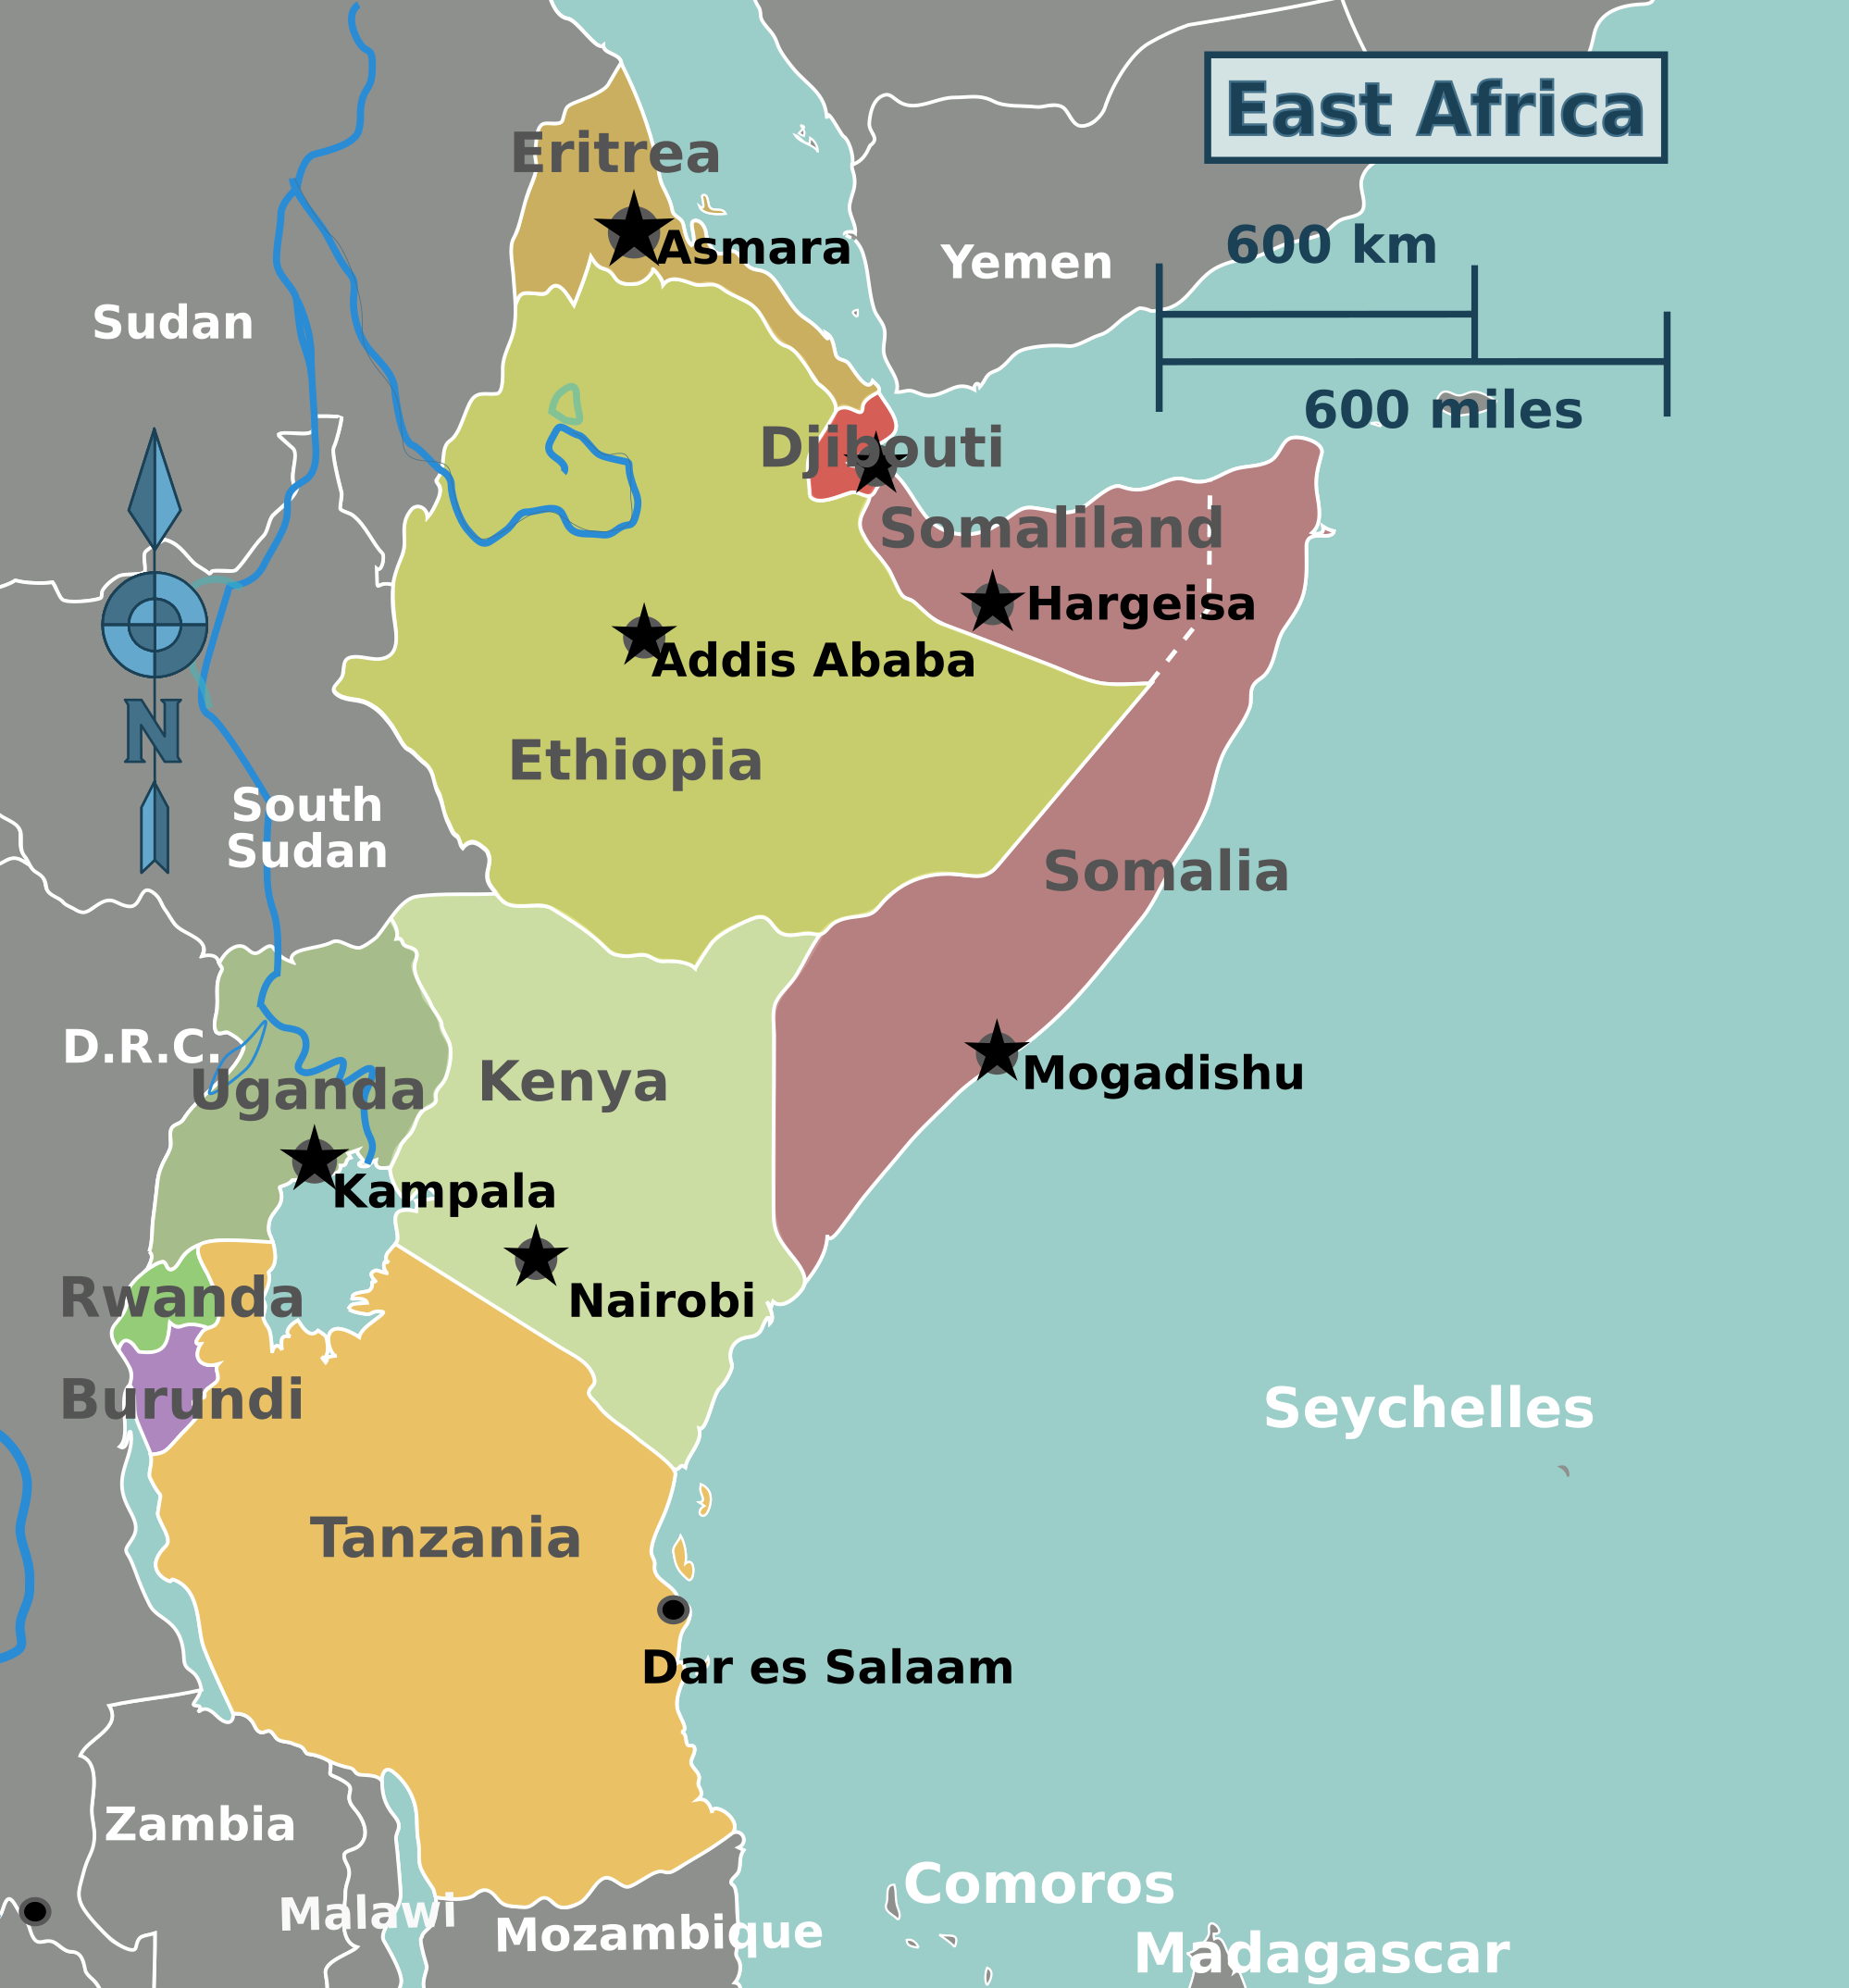 FileEast Africa regions mappng Wikimedia Commons